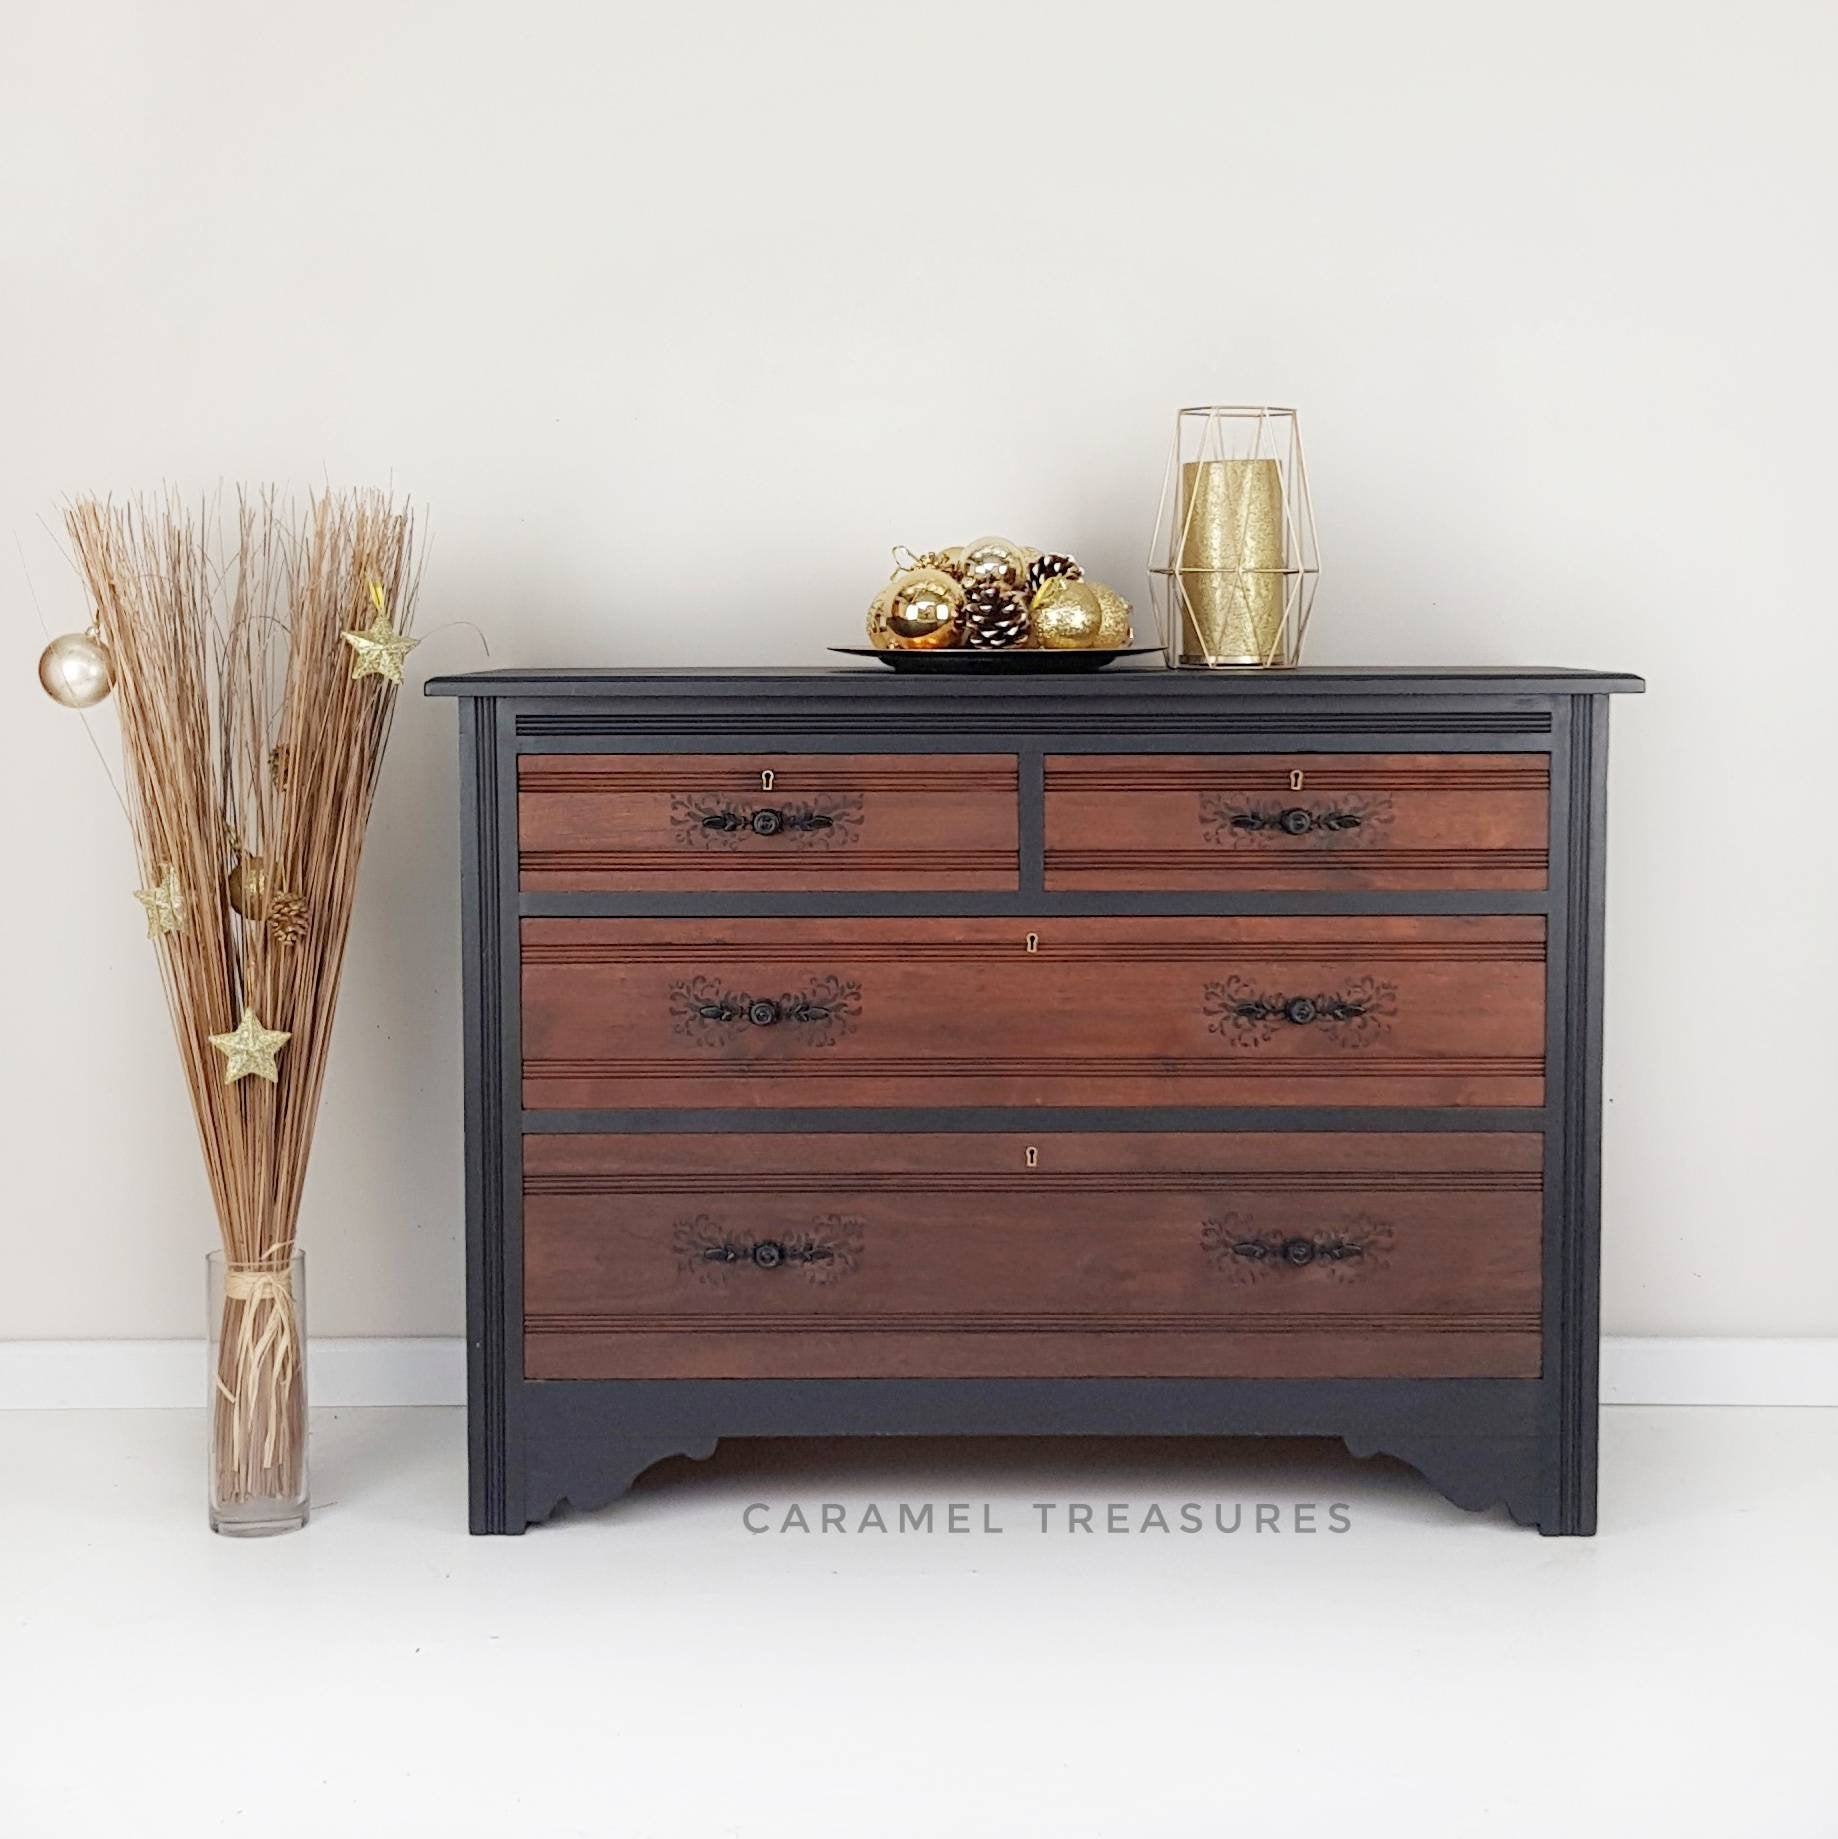 Rustic vintage chest of drawers hand painted in black - Caramel Treasures